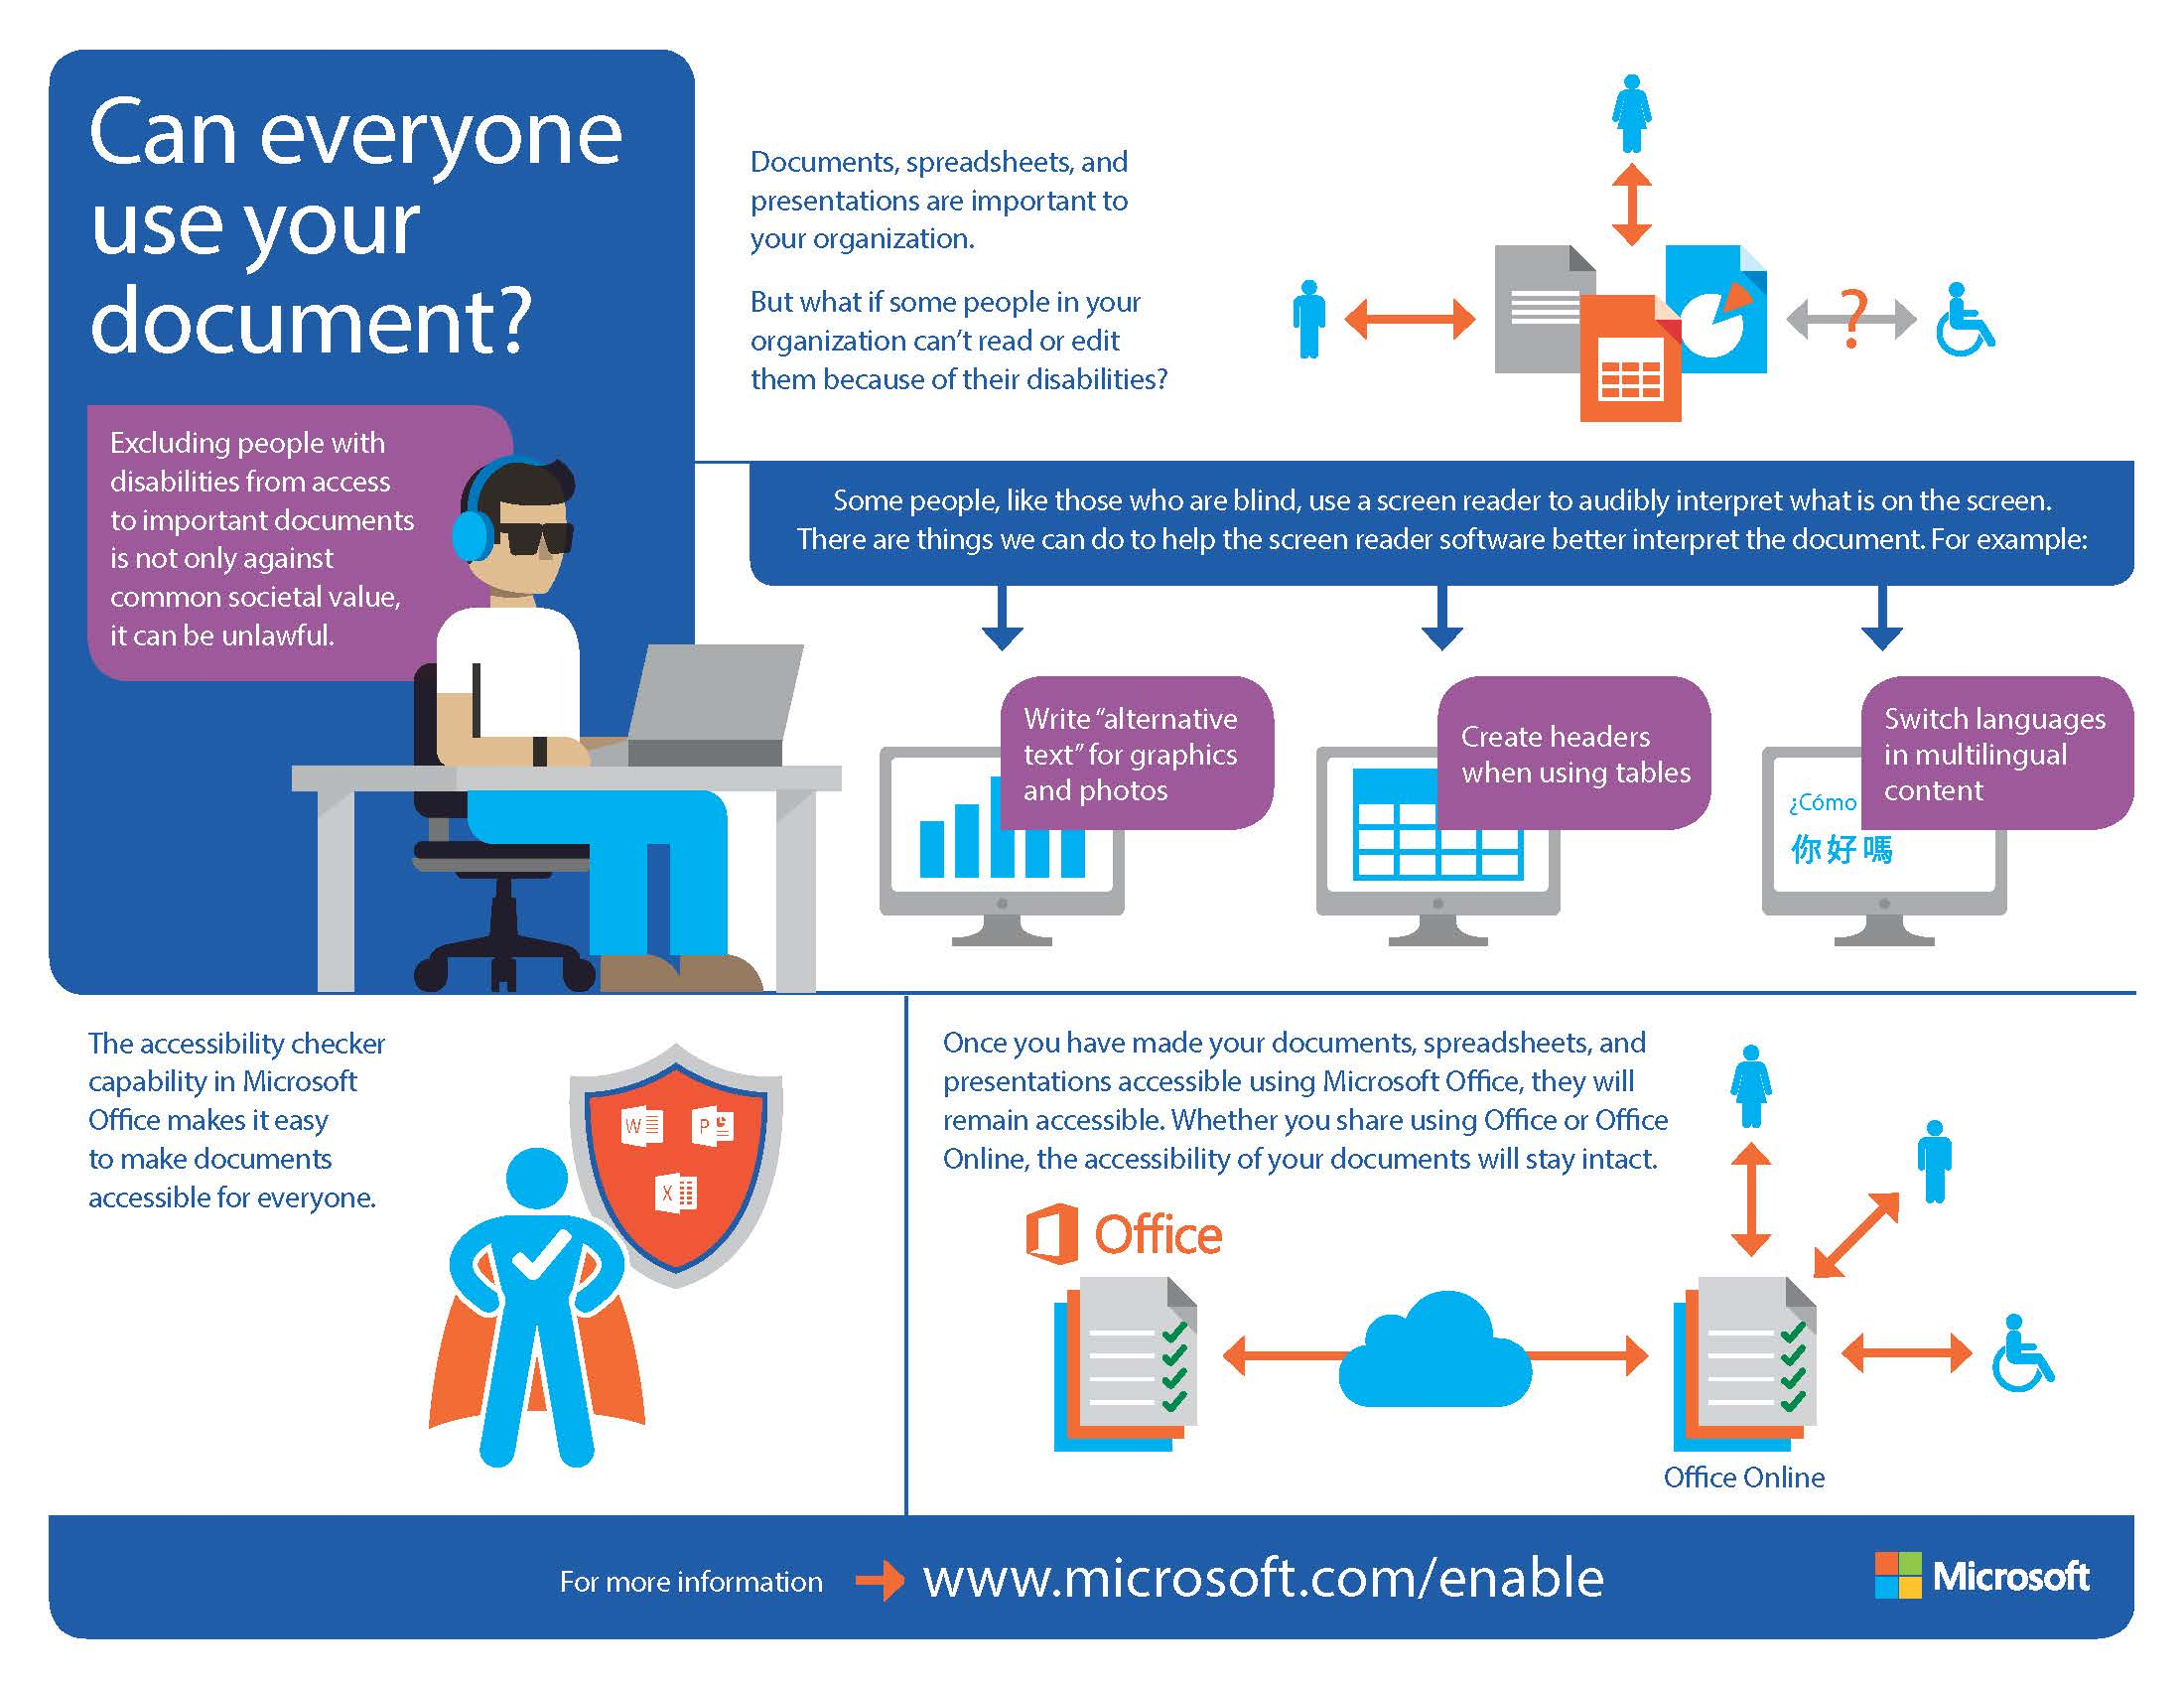 Infographic from Microsoft about accessibility features in Microsoft Office